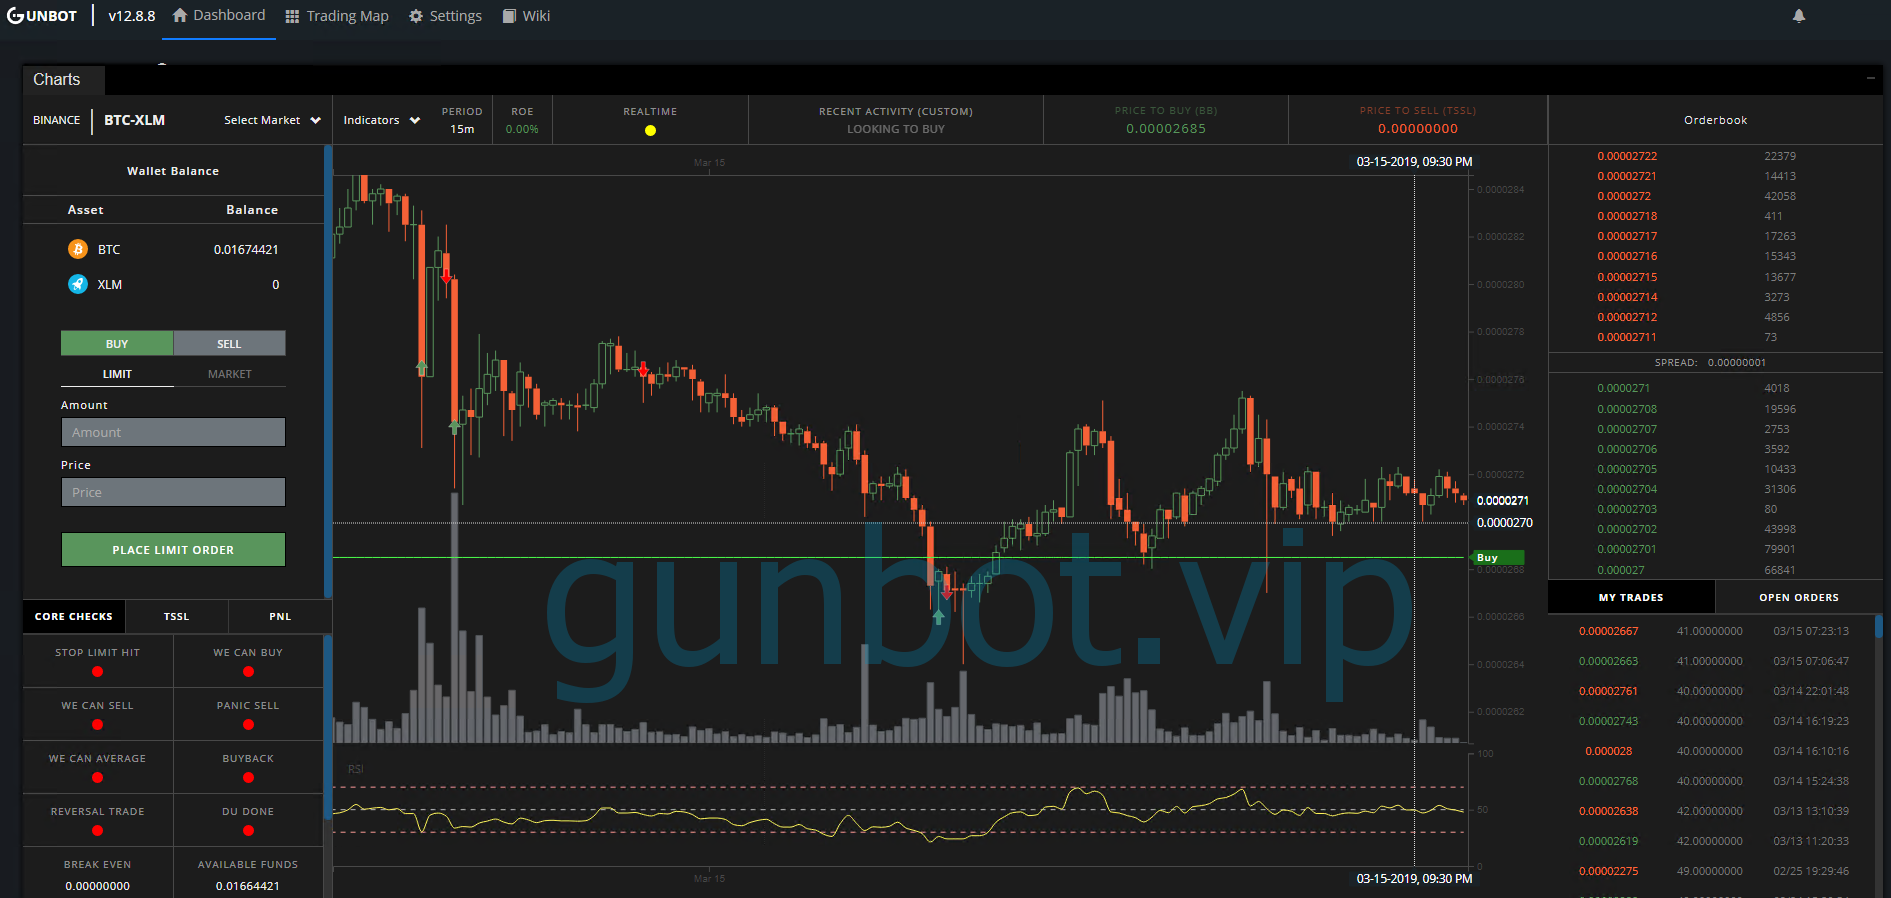 About Gunbot – The Best Crypto Trading bot in the world | Gunbot